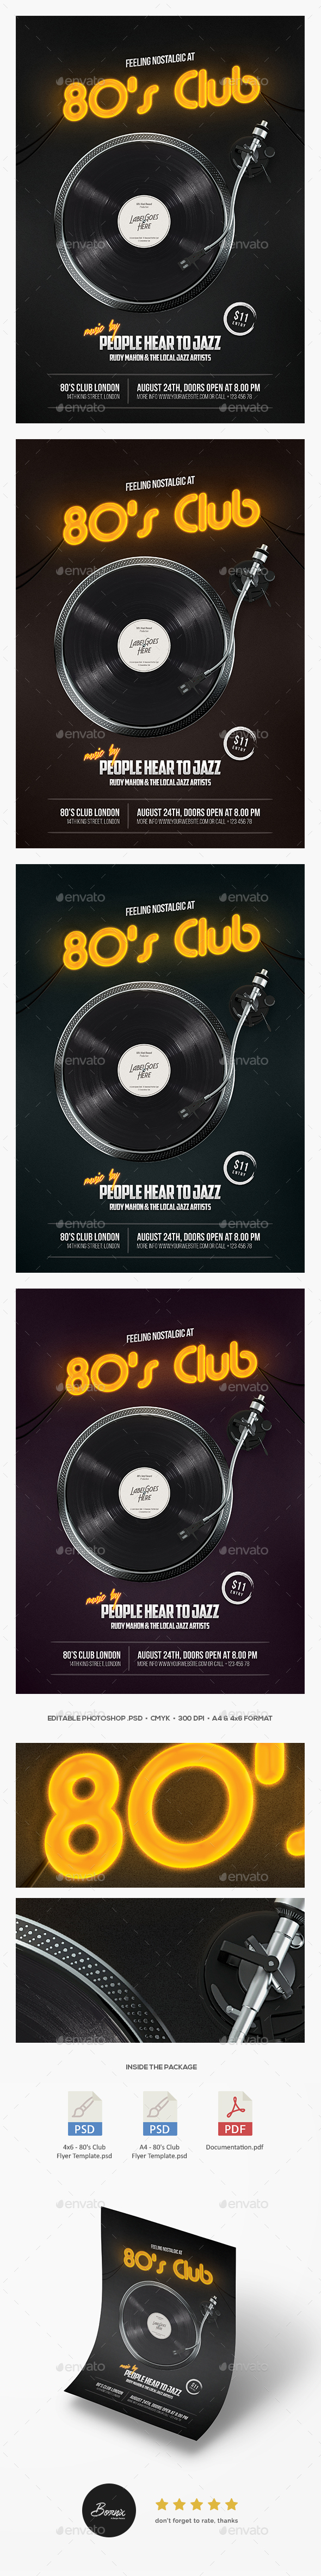 80s Club Flyer - Clubs & Parties Events